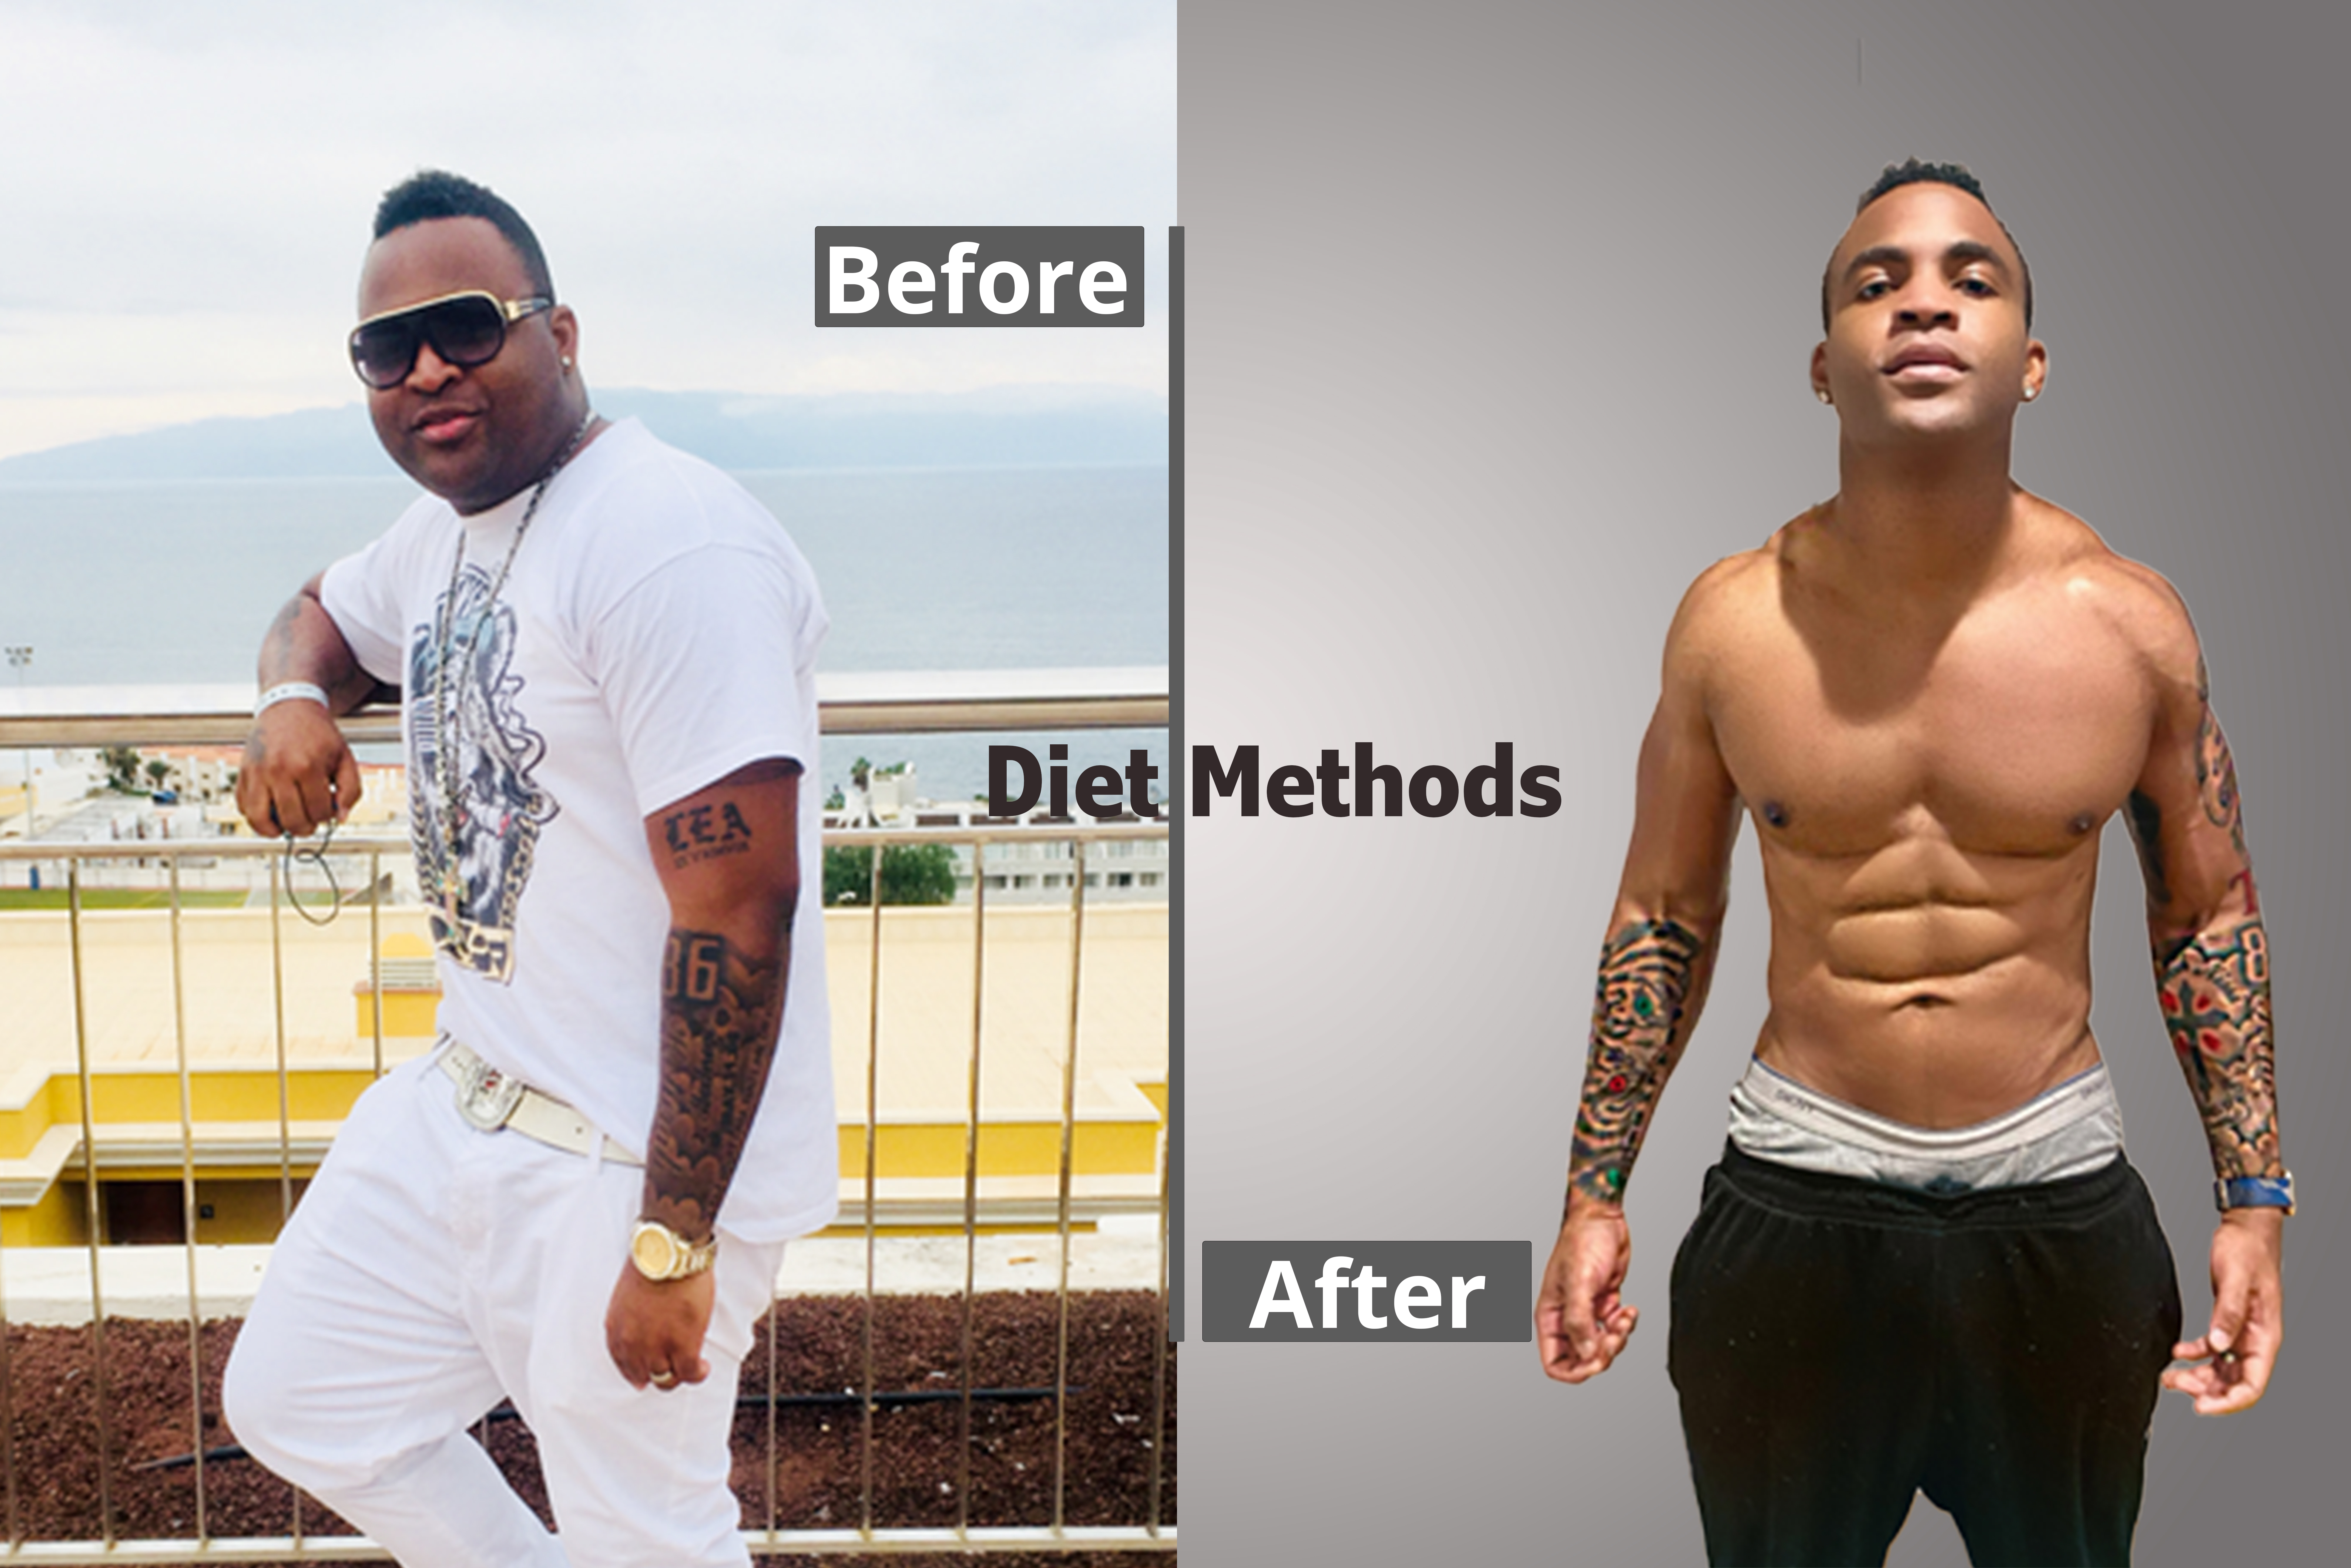 Tirule before and after, health eating, diet method, ambition over everything